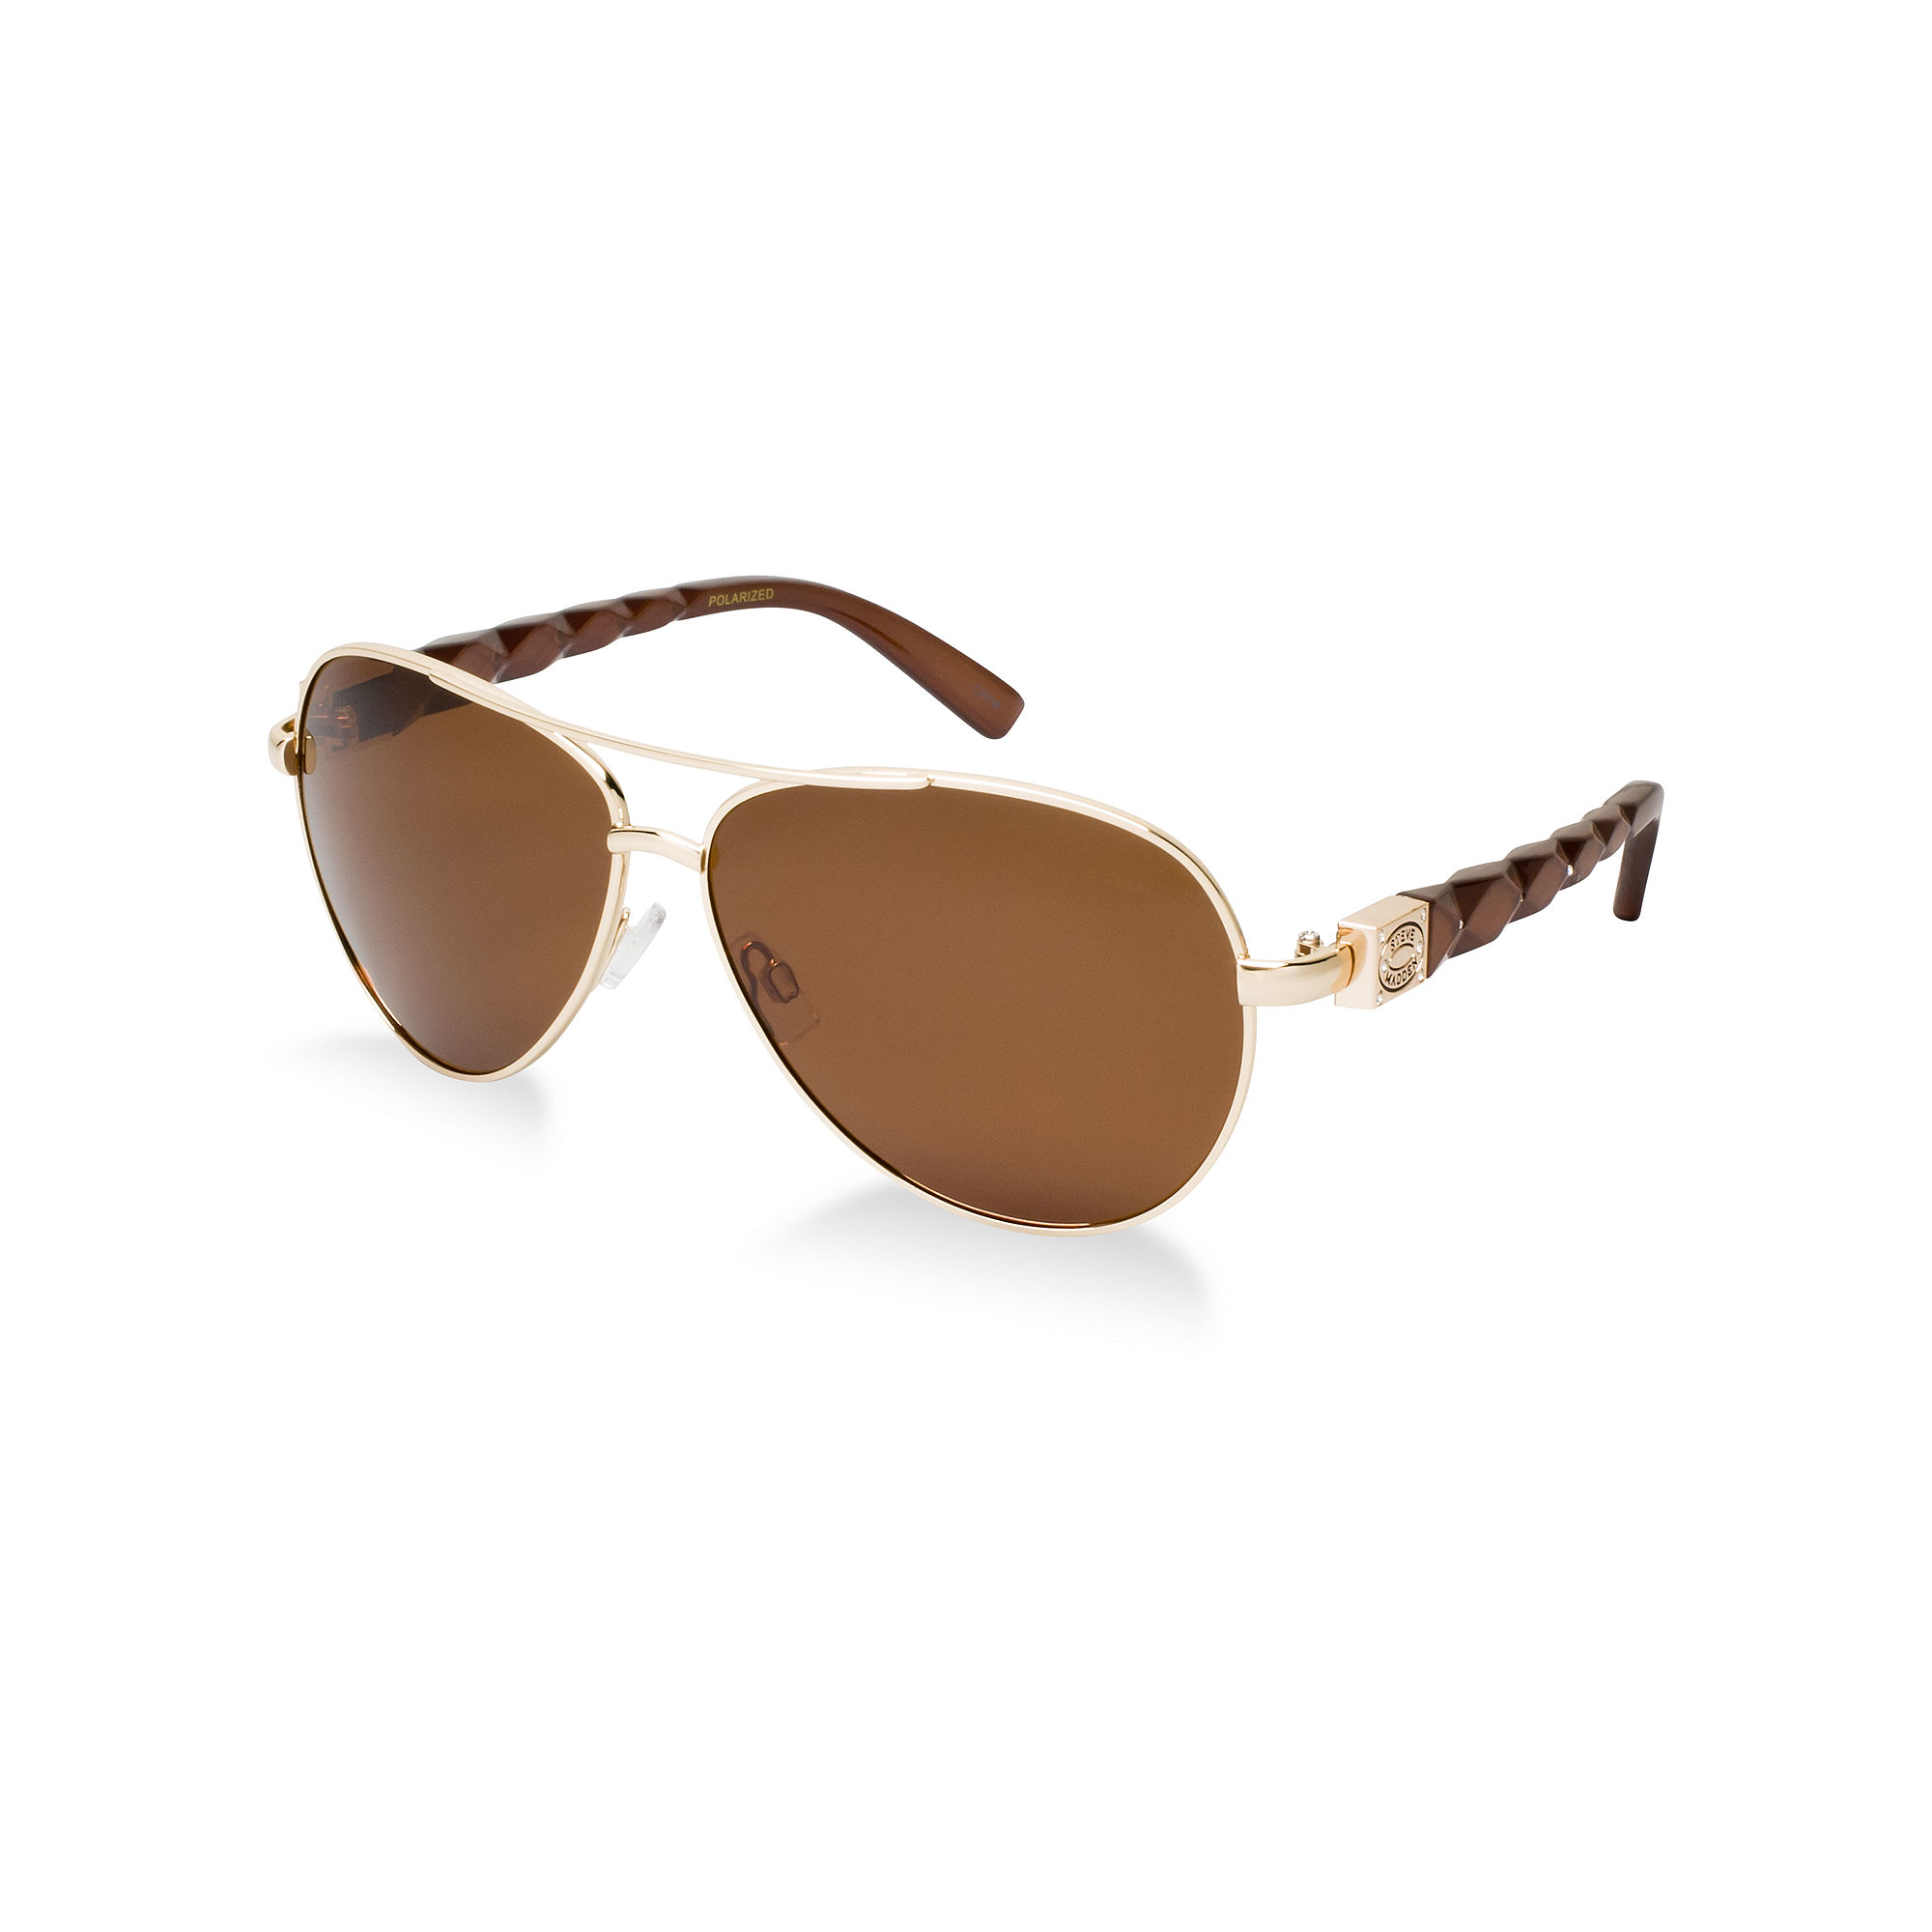 3a1f187fb0 Lyst - Steve Madden Sunglasses in Brown for Men